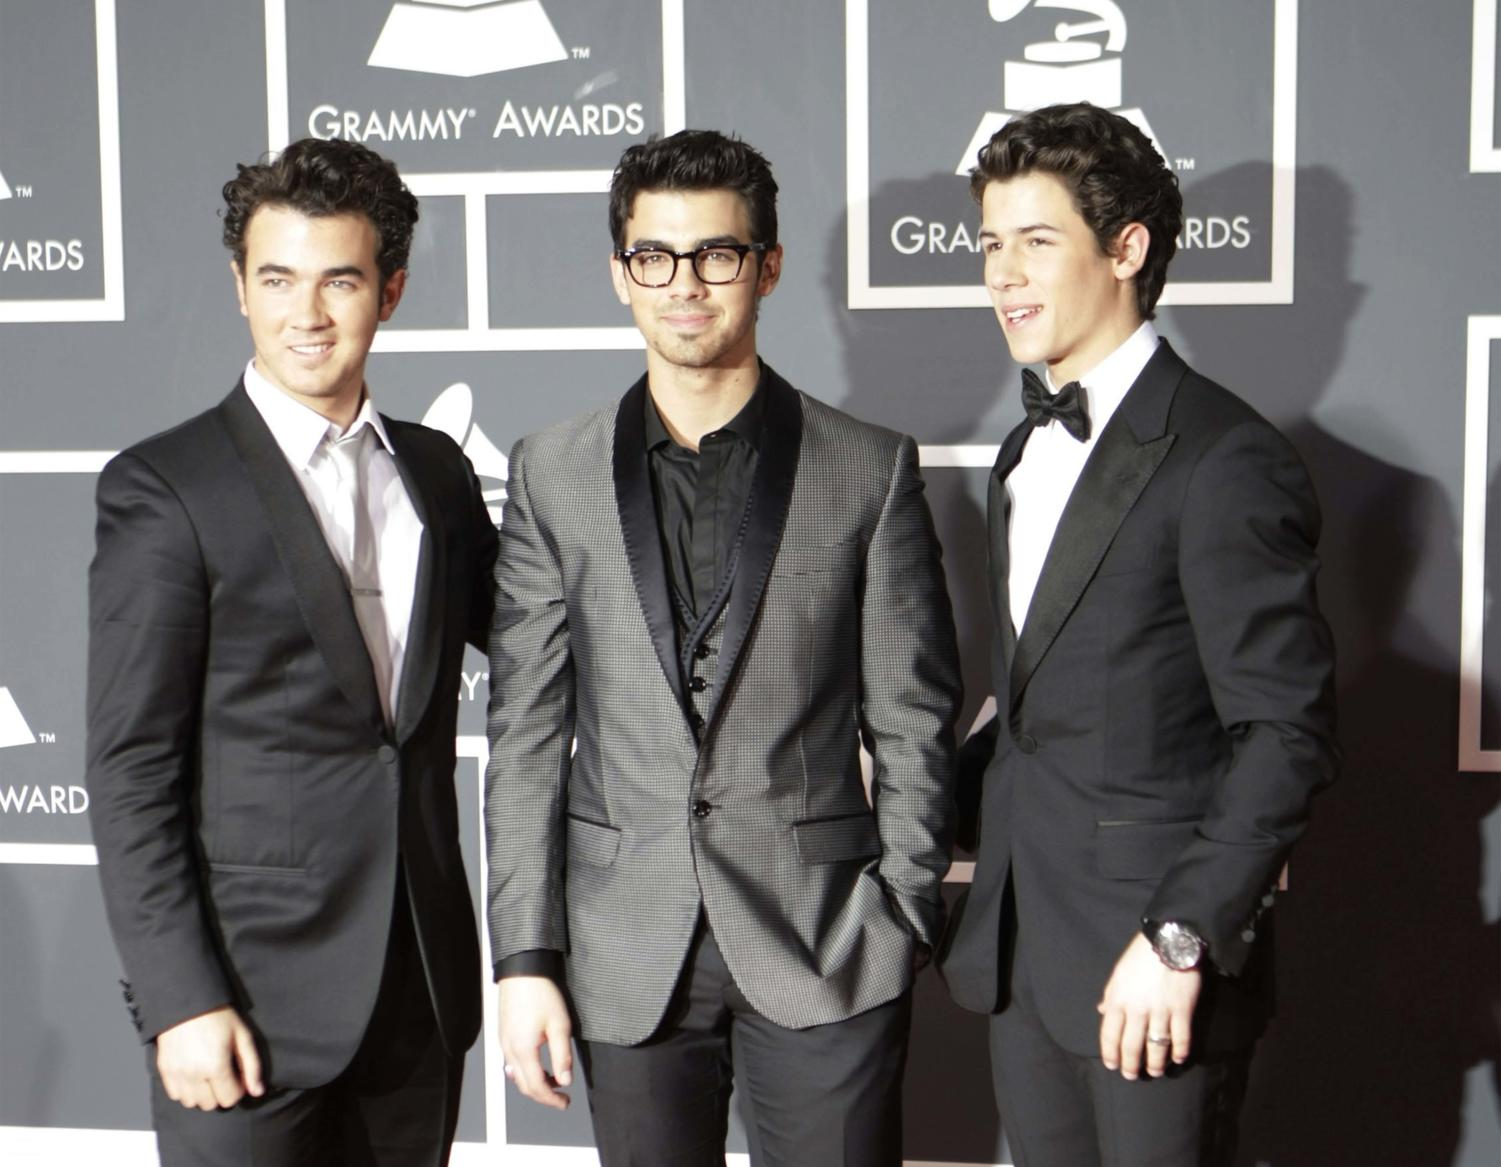 The Jonas Brothers arrive at the 52nd Annual Grammy Awards at the Staples Center in Los Angeles, on Jan. 31, 2010. (Jay L. Clendenin/Los Angeles Times/MCT)